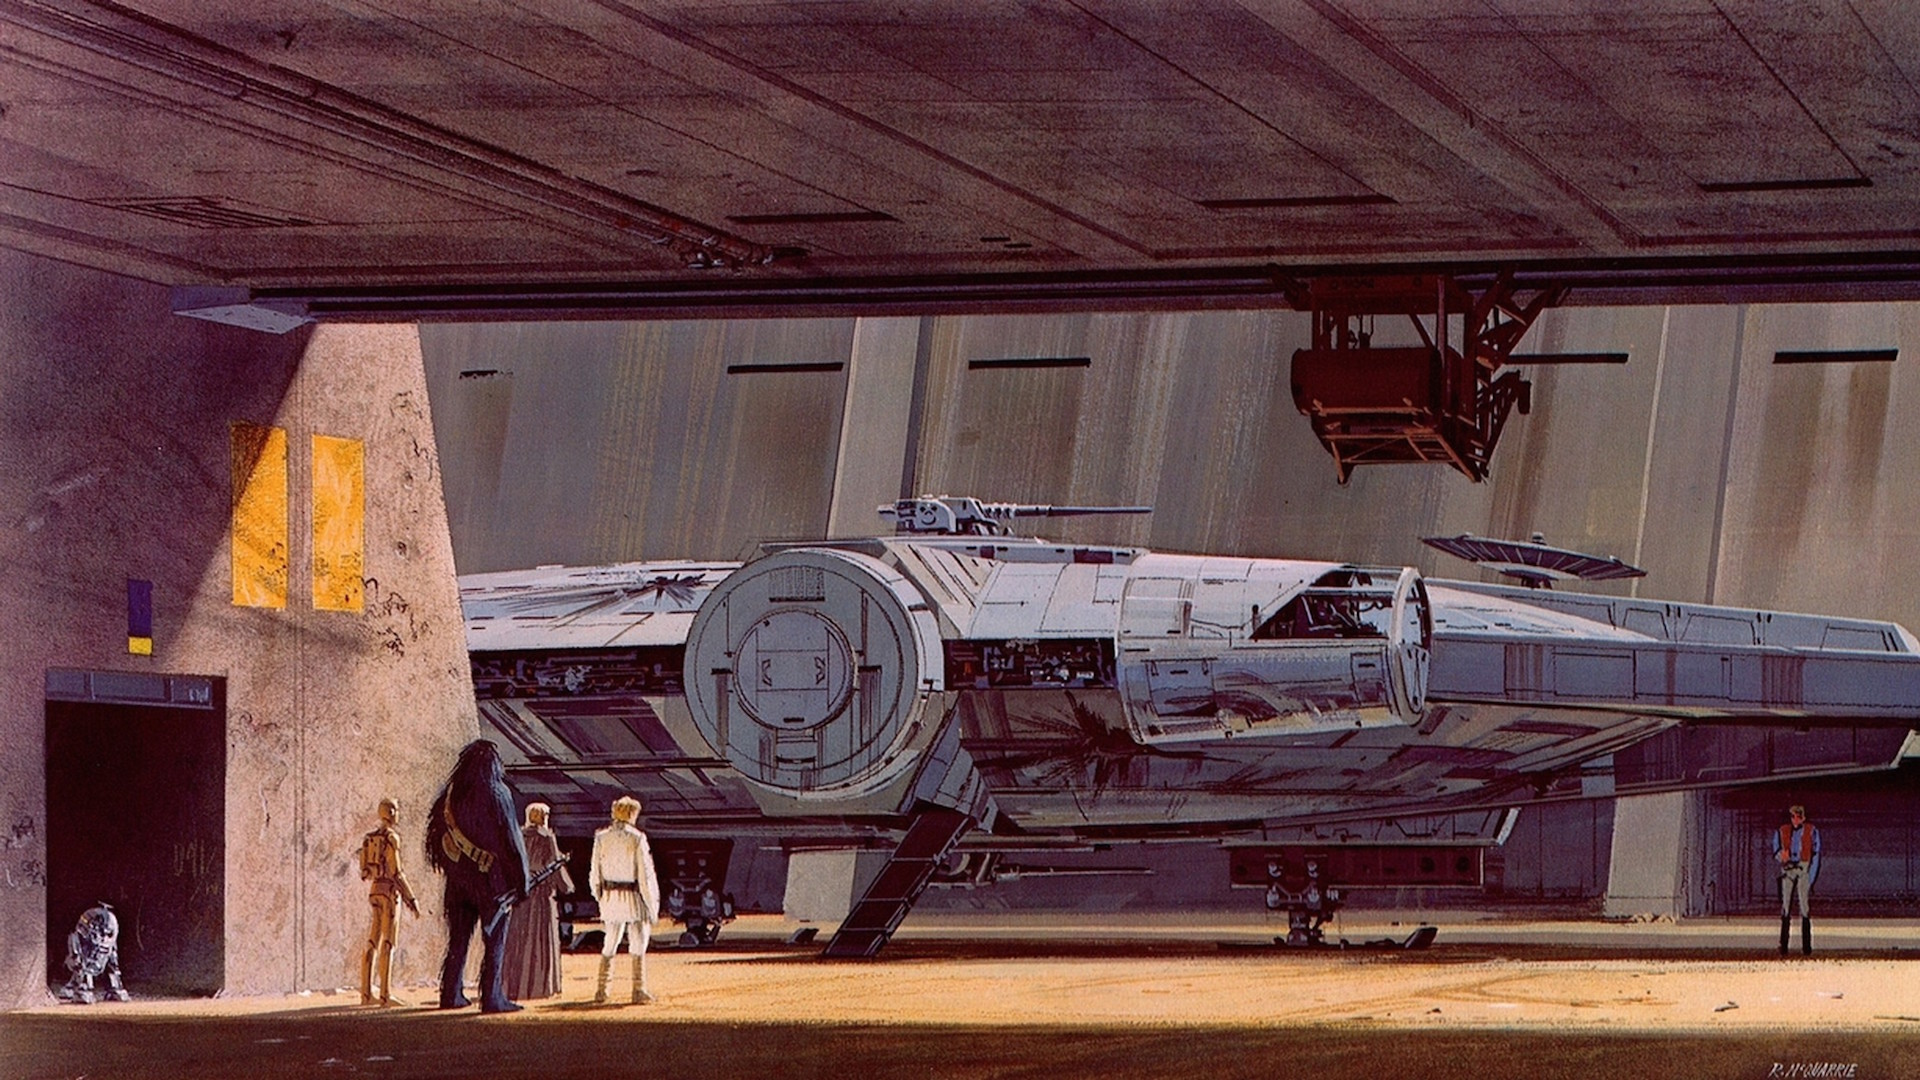 Some of my favourite Ralph McQuarrie Star Wars concept art wallpapers